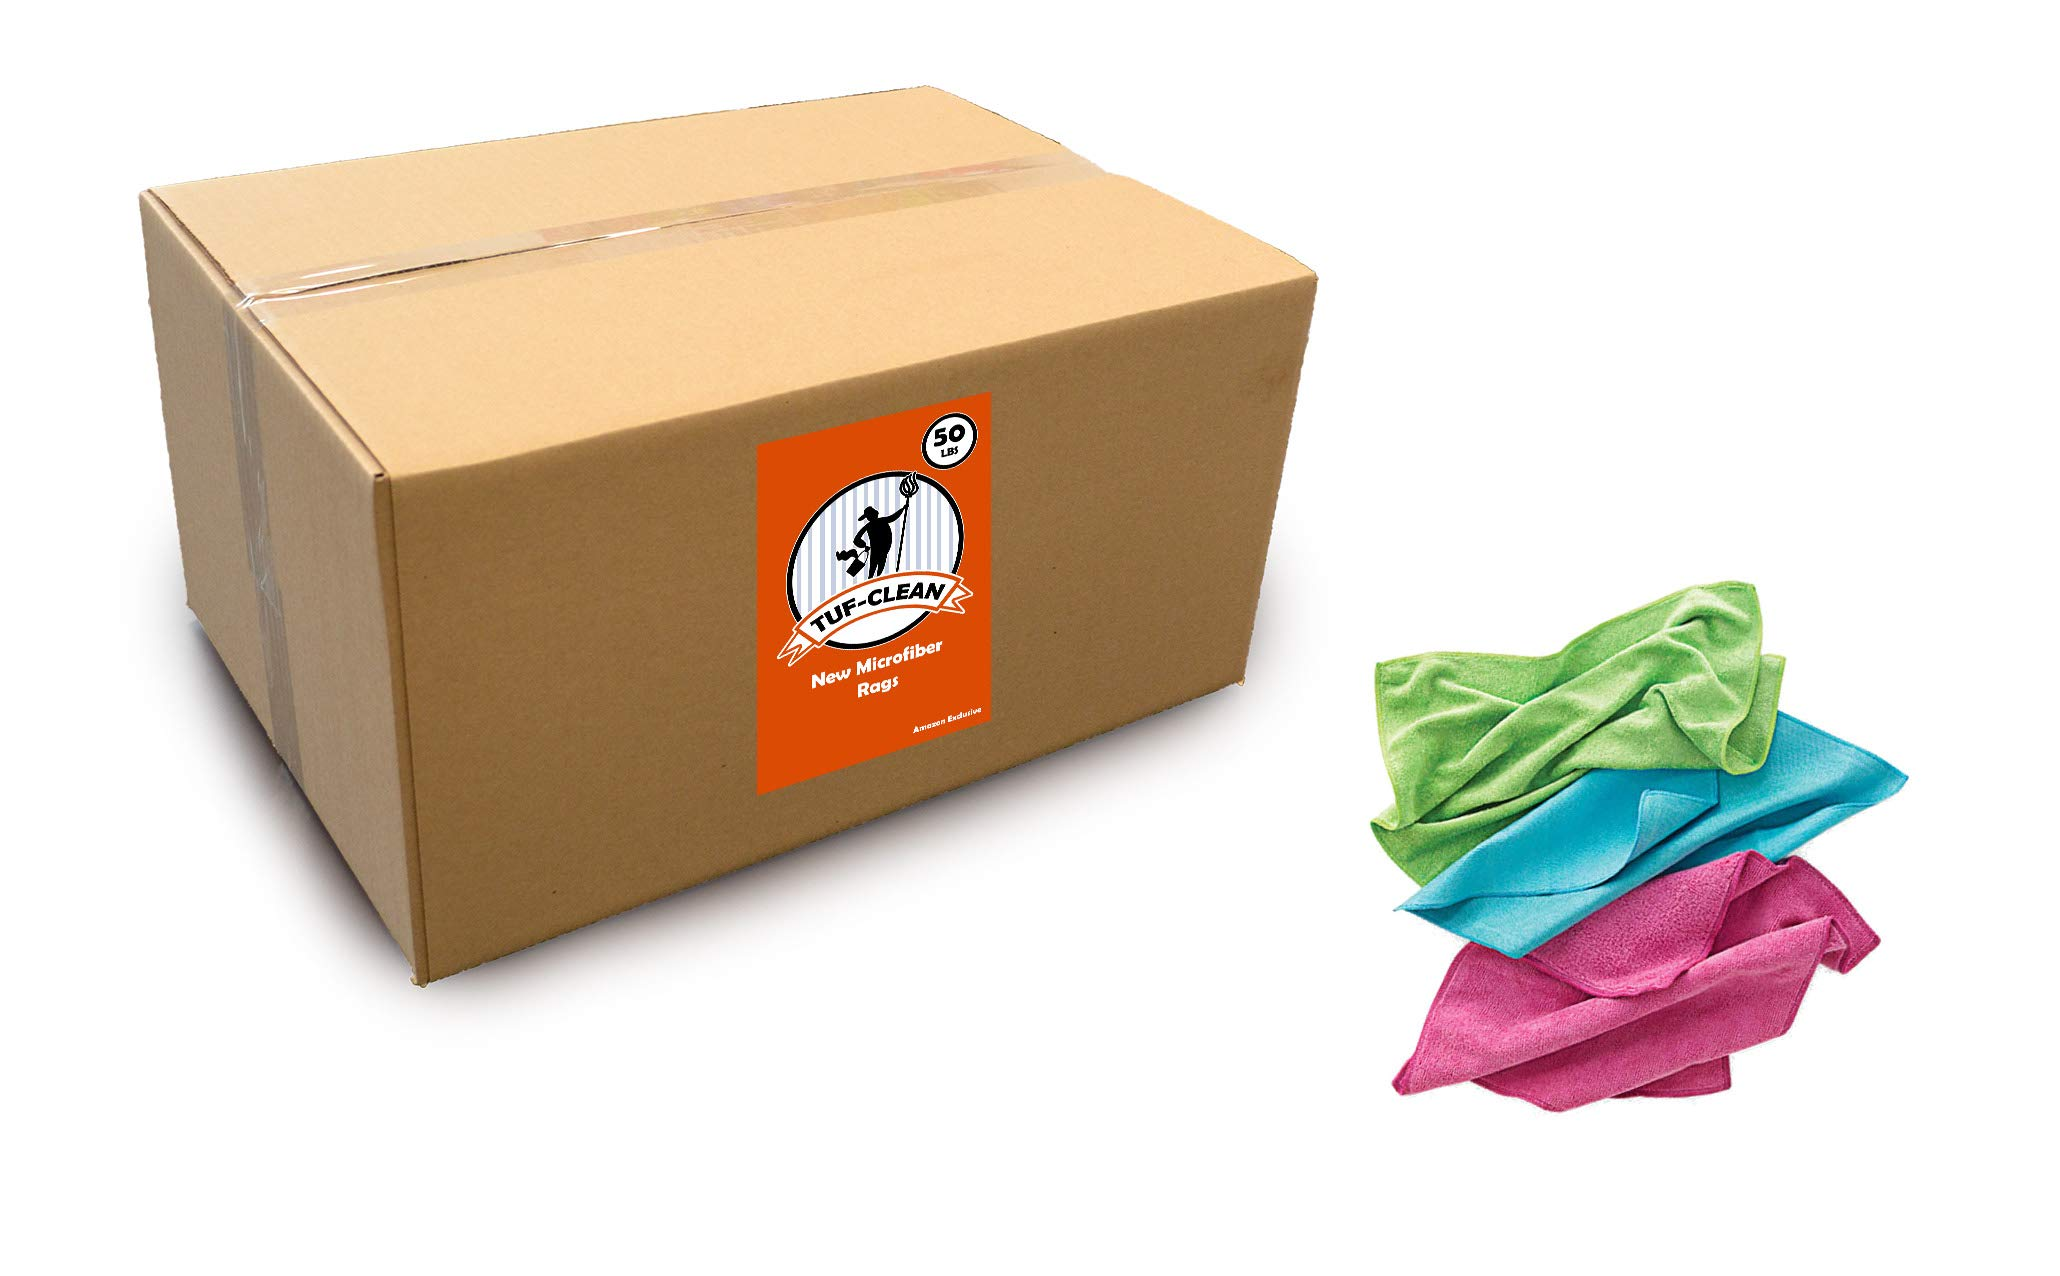 Tuf-Clean A73128 Brand New Rags, Microfiber, Assorted Colors, 50 lb Box